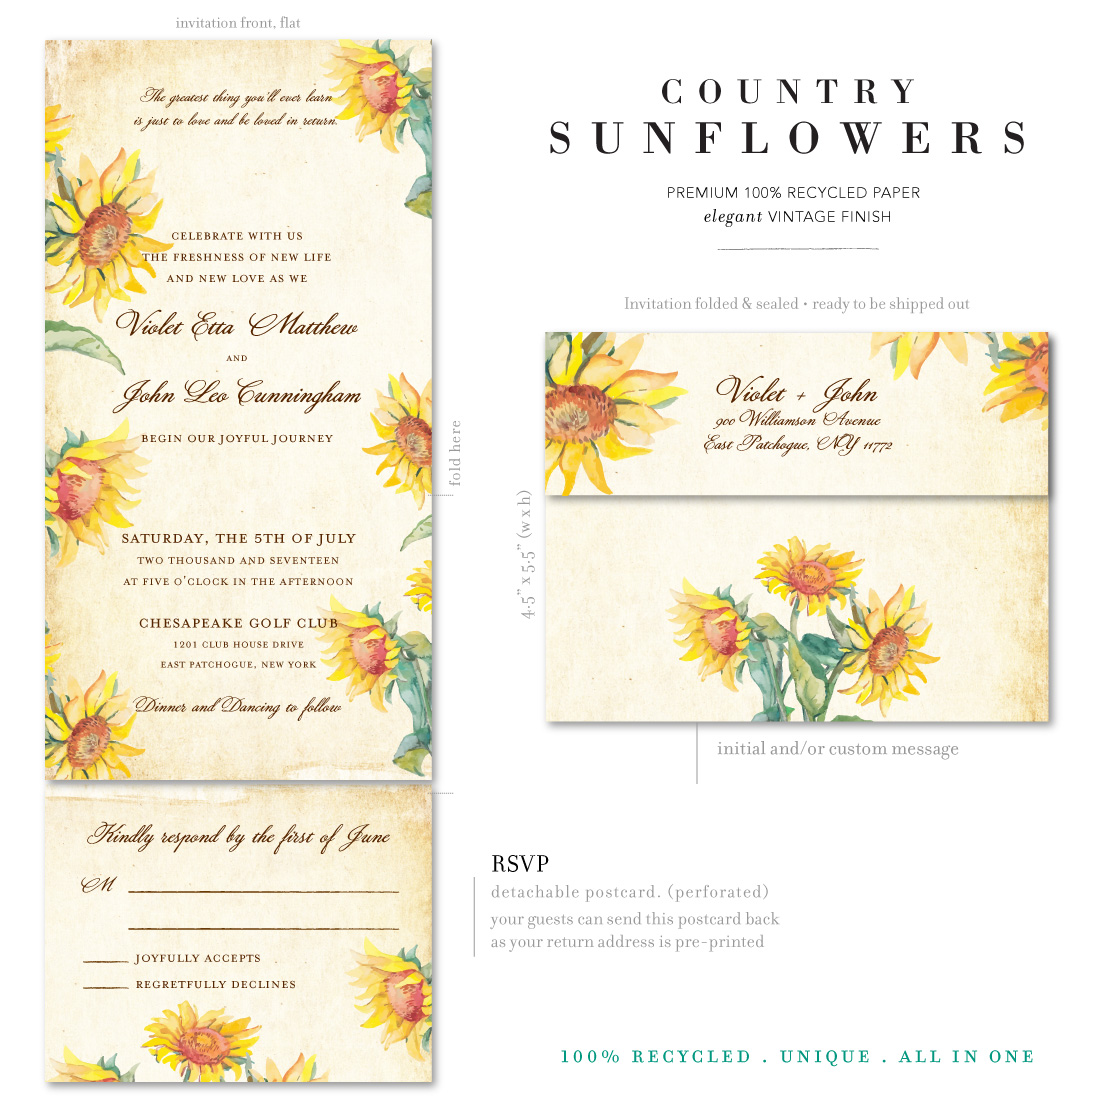 Vintage Country Sunflowers wedding invitations